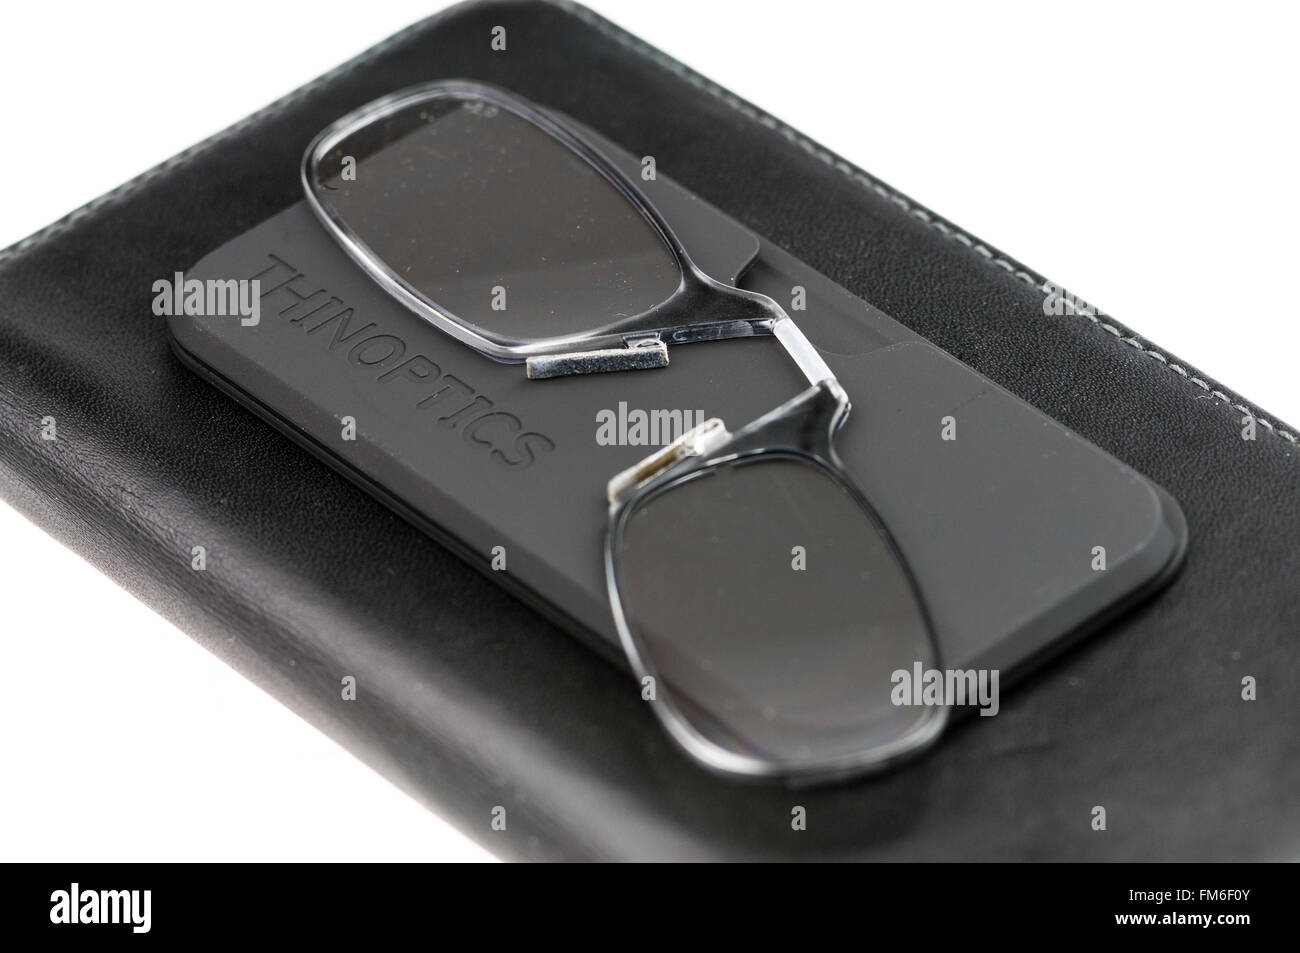 ThinOptics reading glasses on a case stuck to a mobile phone case. - Stock Image